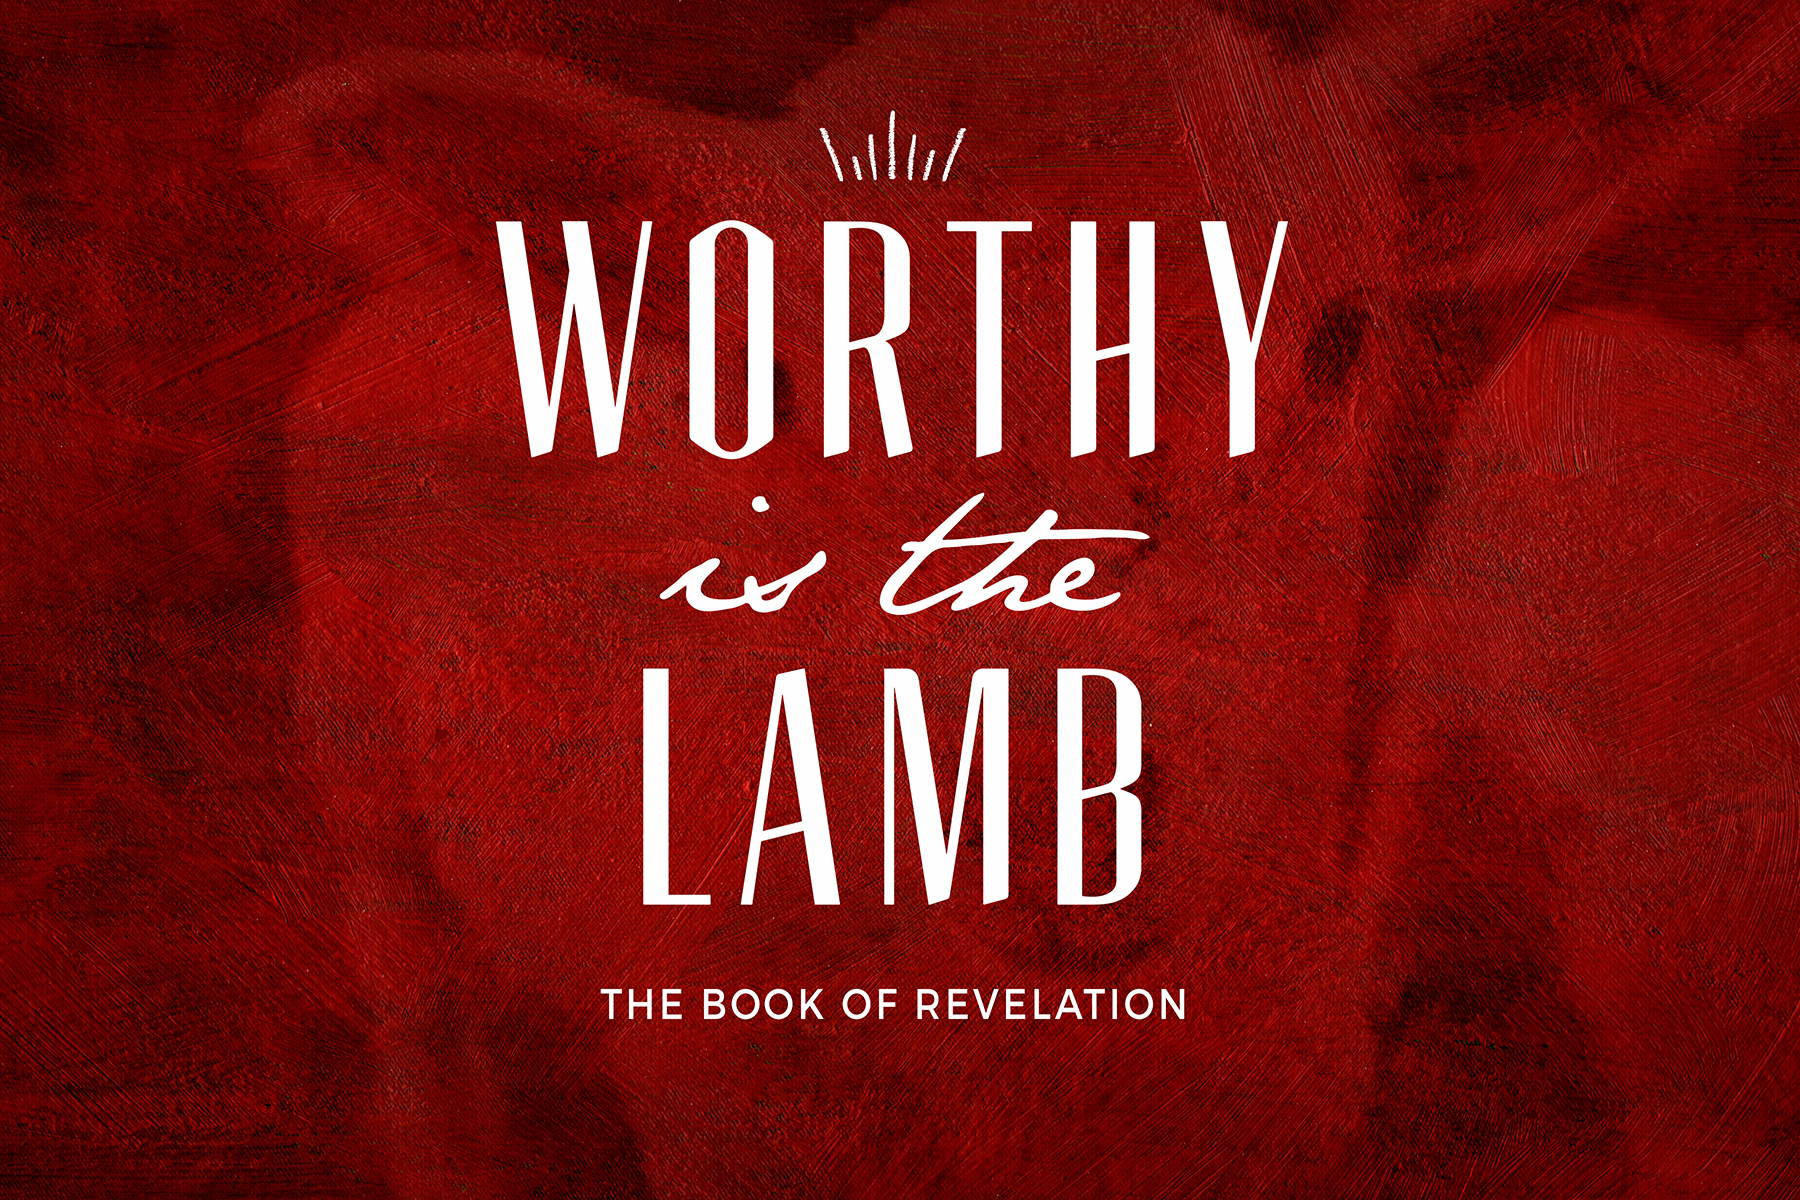 Worthy is the lamb 1